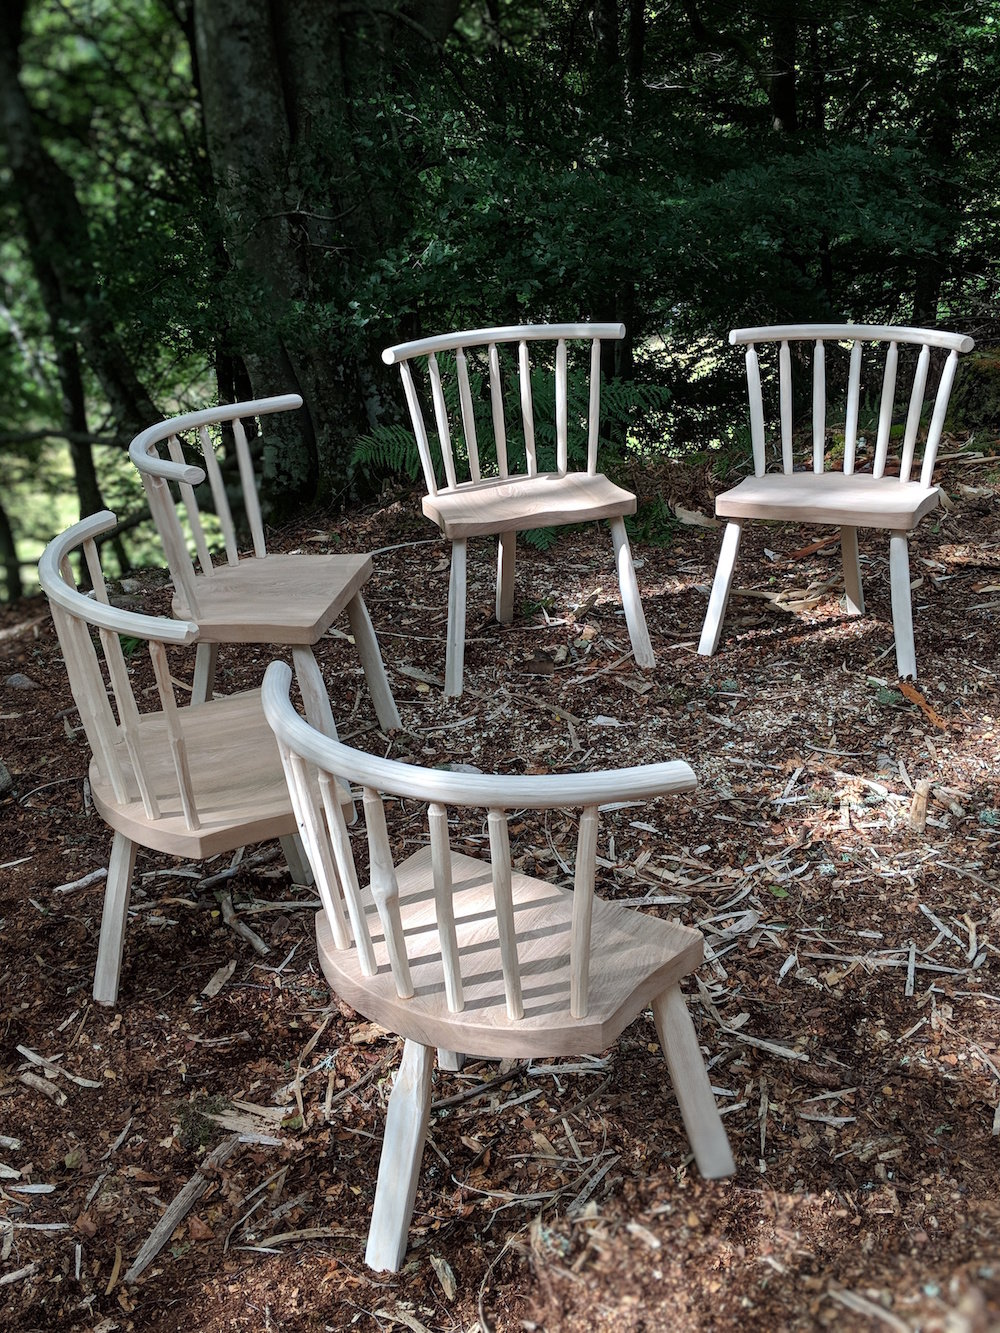 24 - 28 August - West Coast Chair Making Course